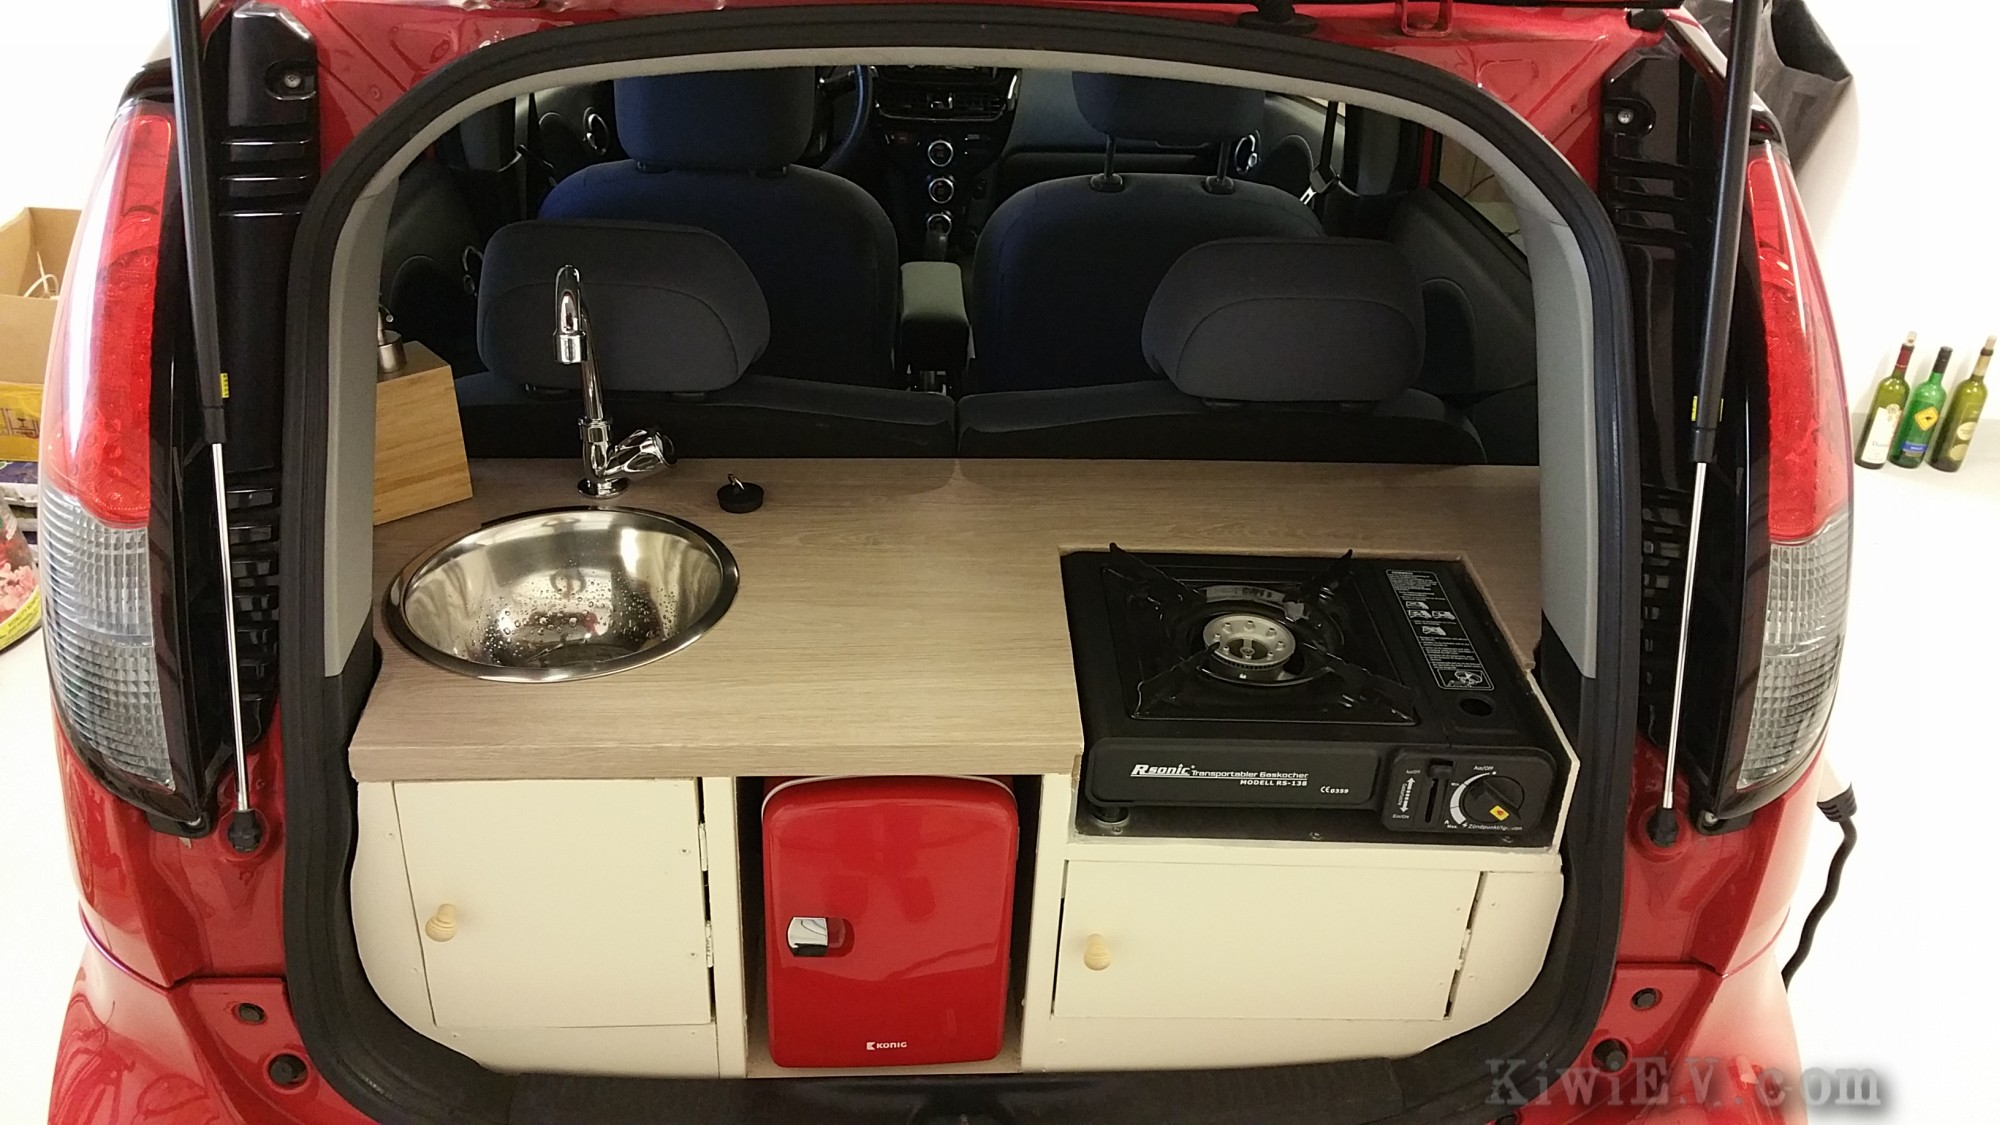 Merveilleux Kitchen In A Car